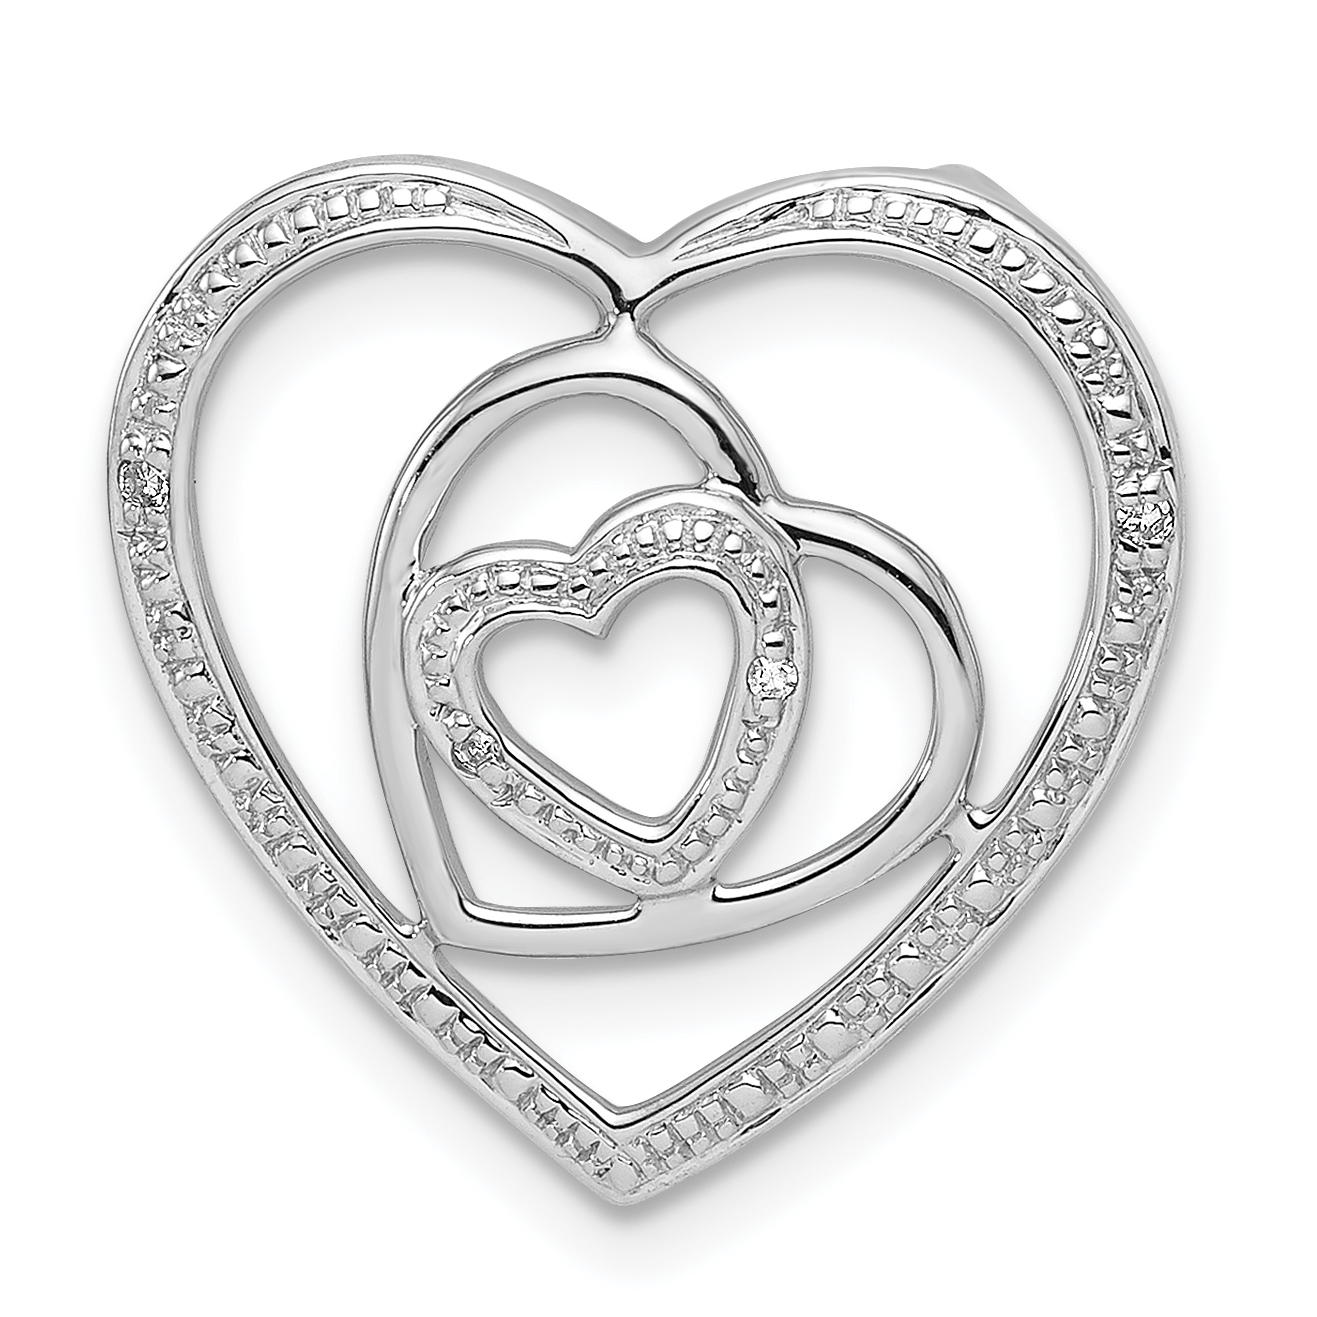 ICE CARATS 925 Sterling Silver Diamond Triple Heart Pendant Charm Necklace Fine Jewelry Ideal Gifts For Women Gift Set From Heart